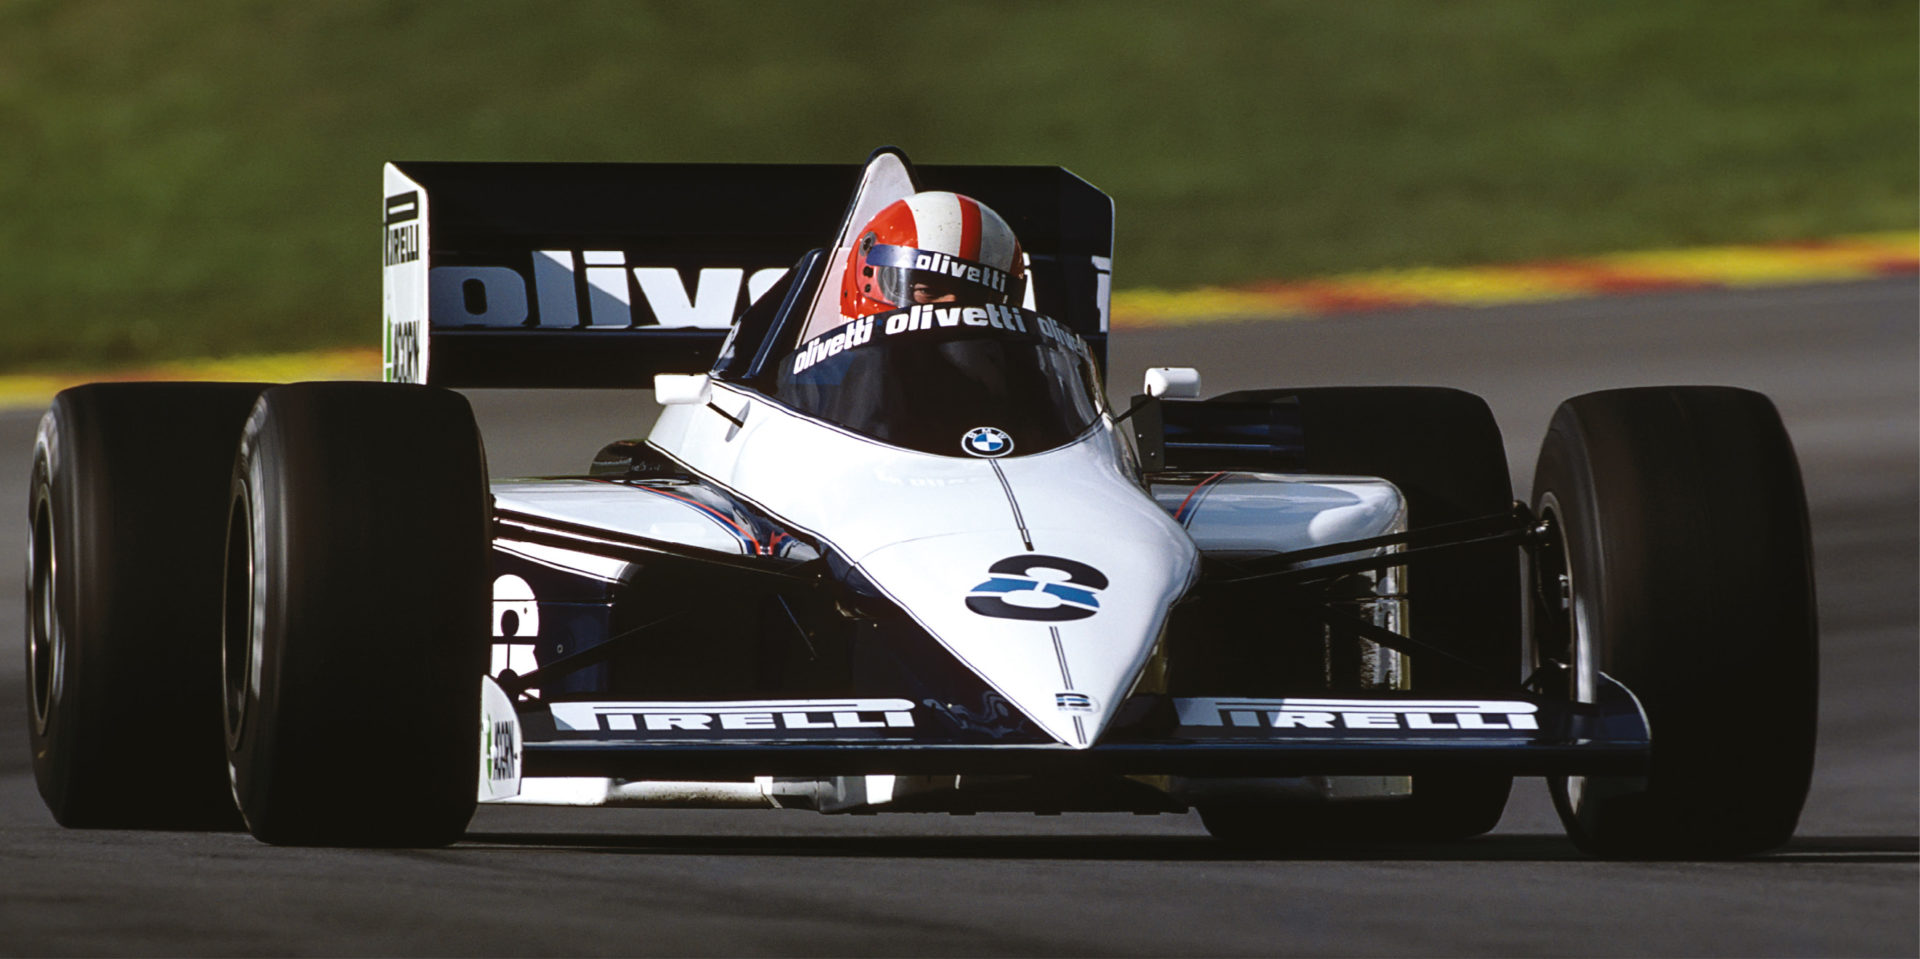 Surer was a great all-rounder, who experienced the F1 turbo era in full effect with the Brabham BT54 in 1985